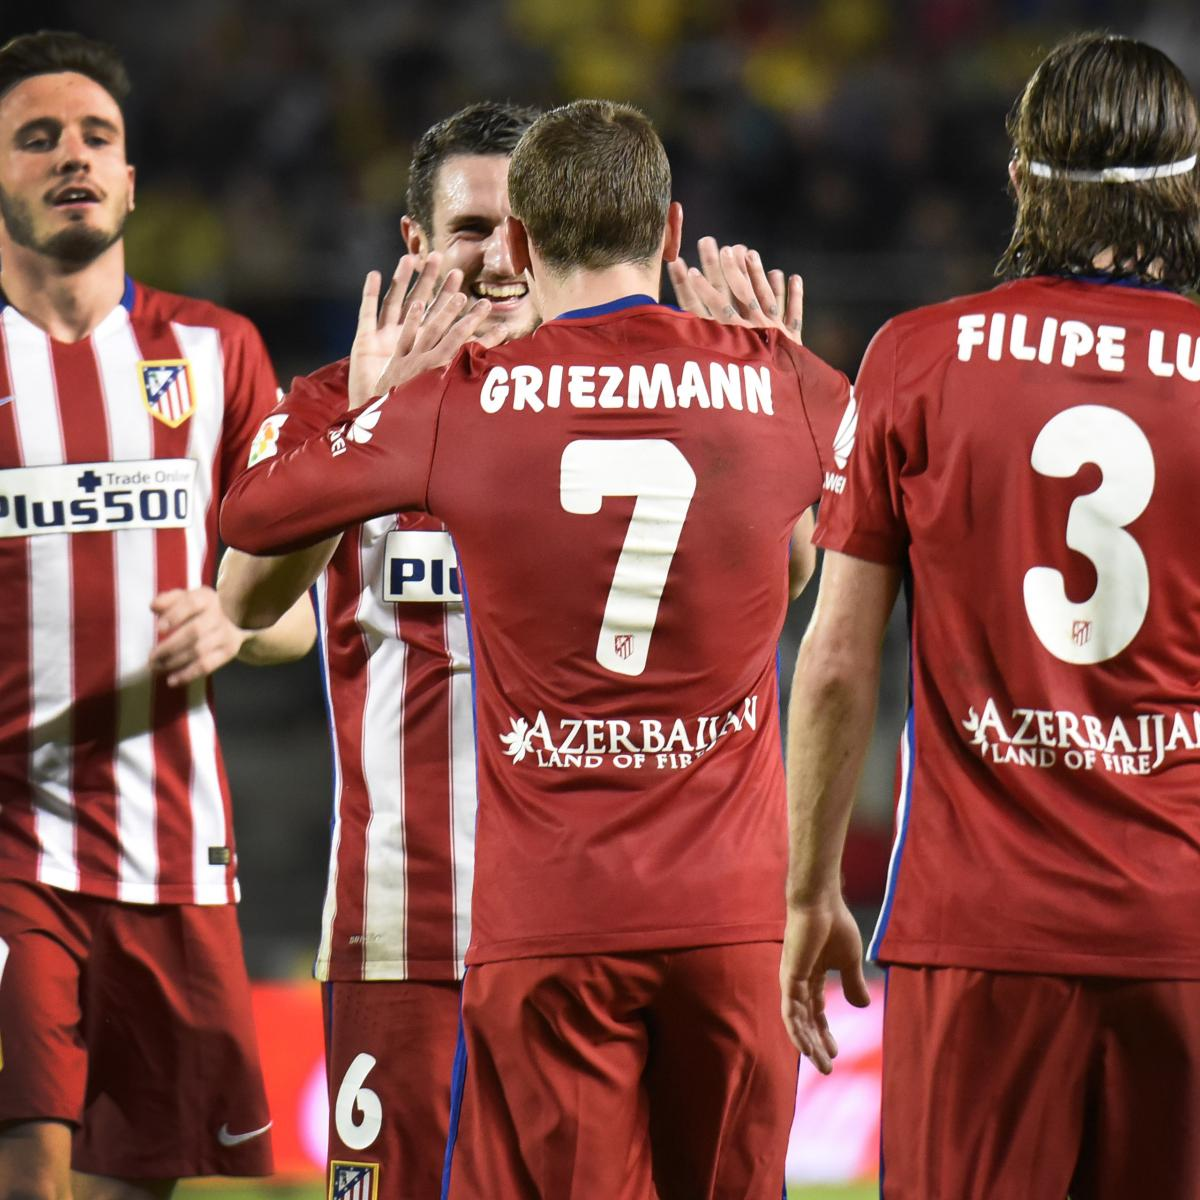 La liga results 2016 scores and updated table after - La liga latest results and table ...